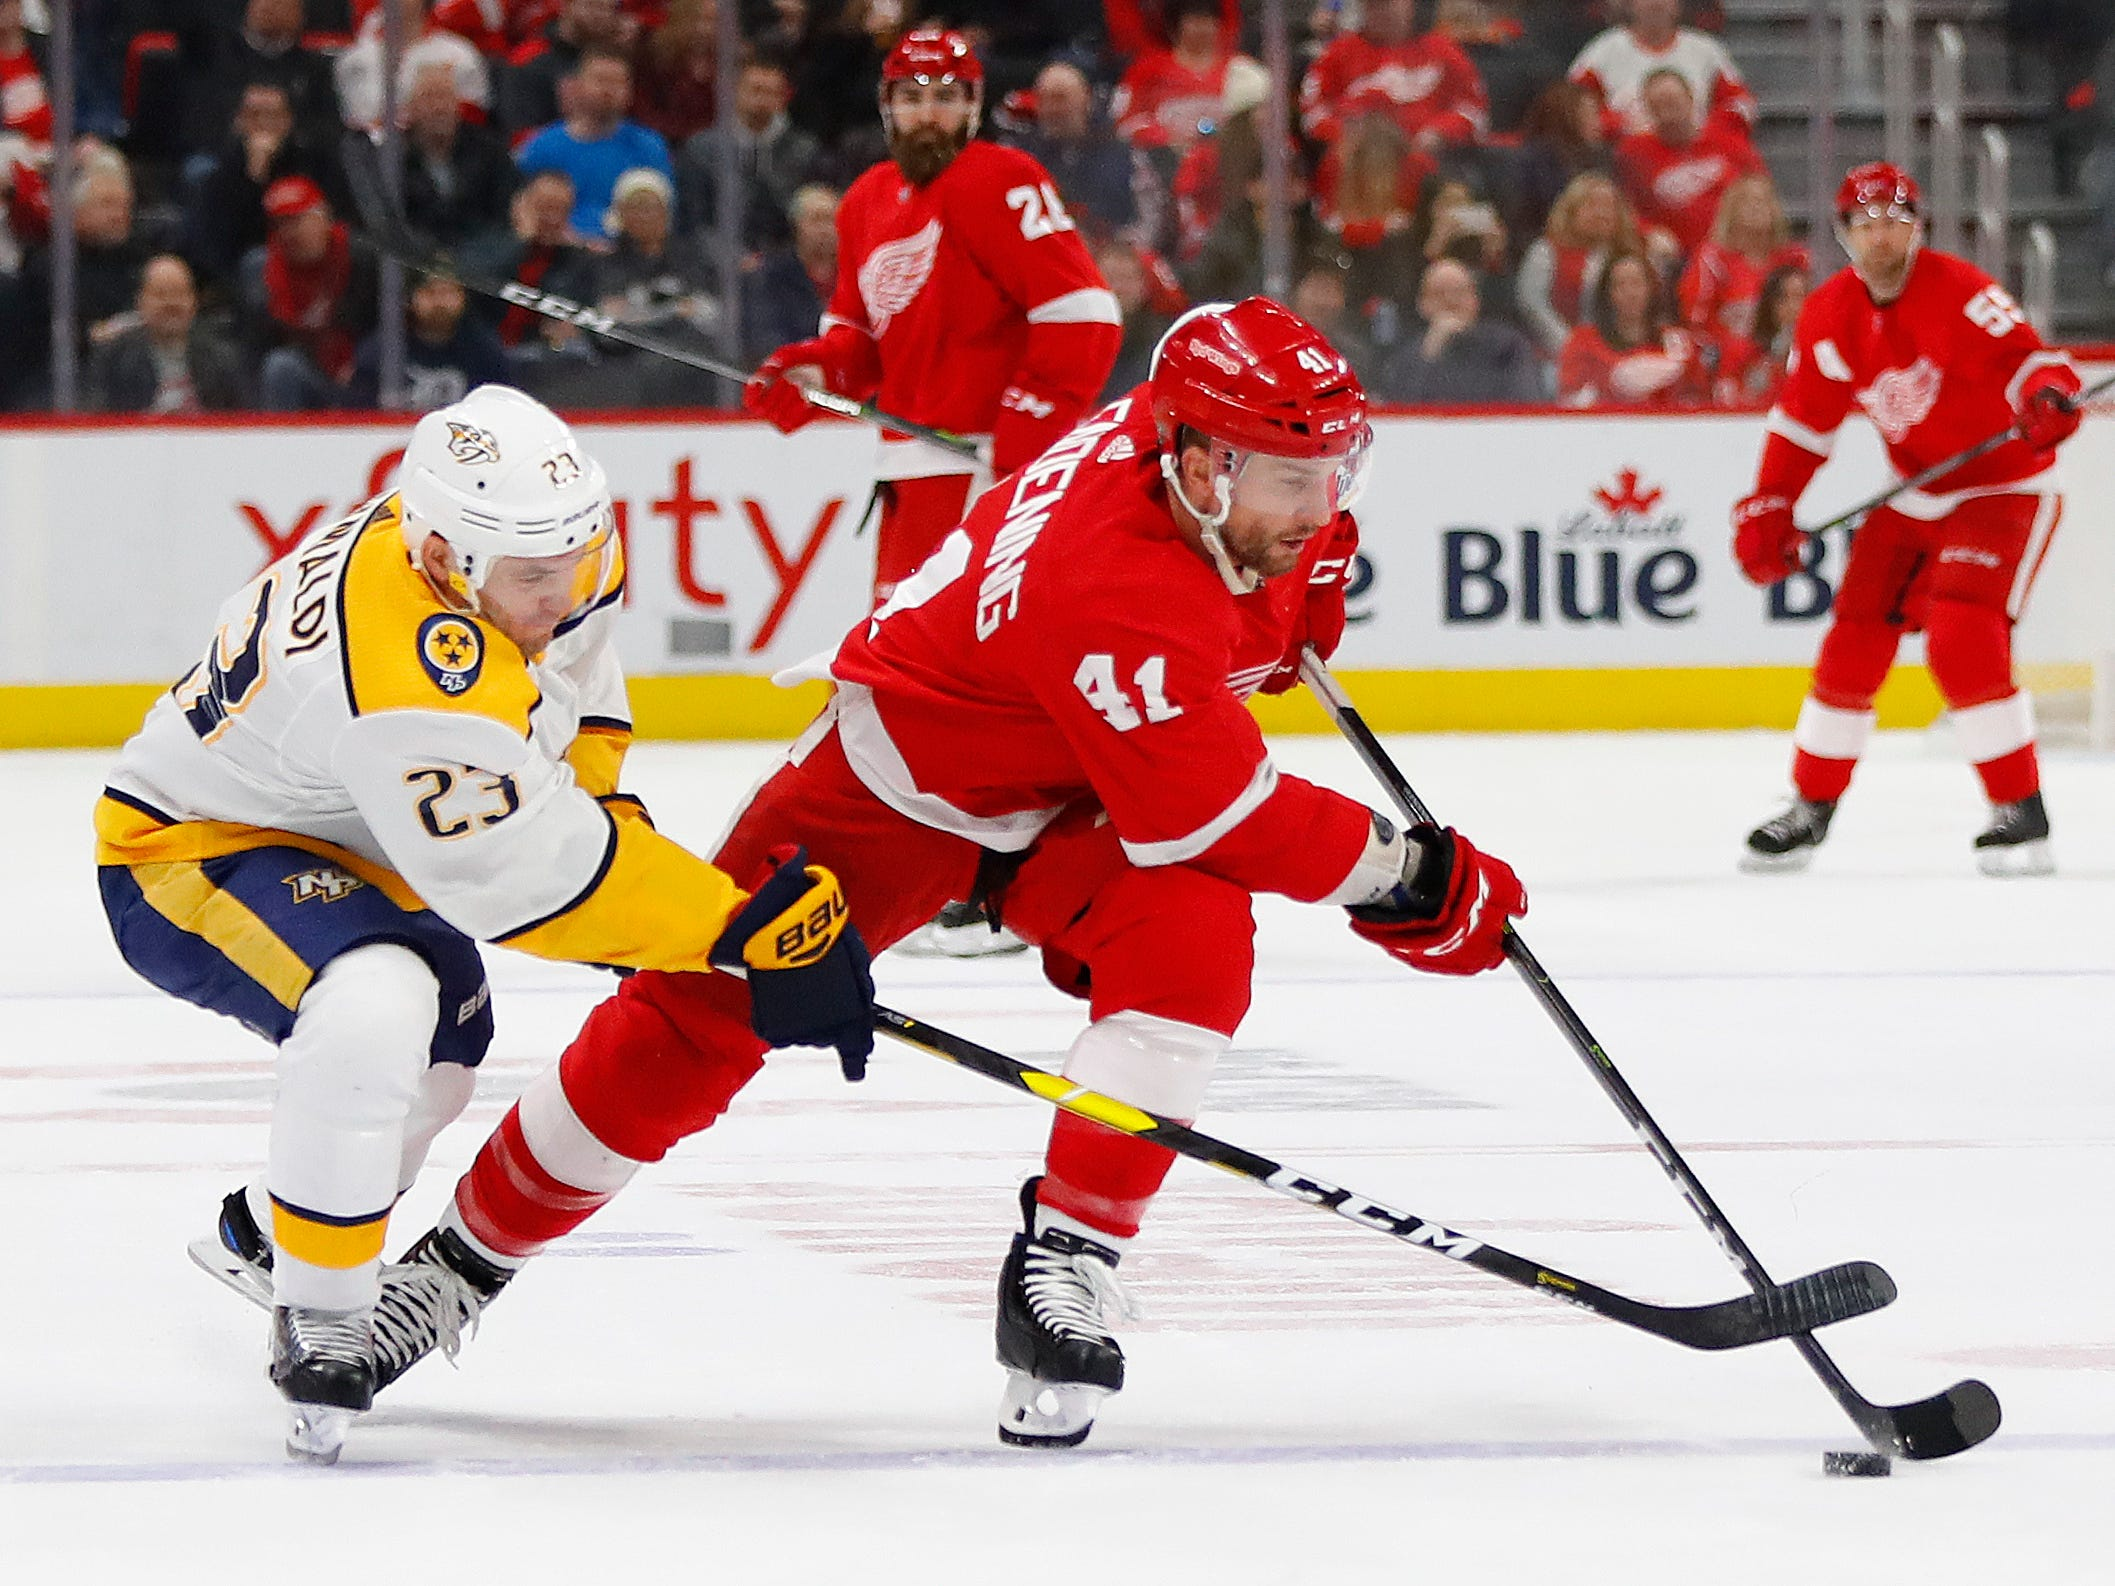 Nashville Predators center Rocco Grimaldi (23) tries to steal the puck from Detroit Red Wings center Luke Glendening (41) in the first period.